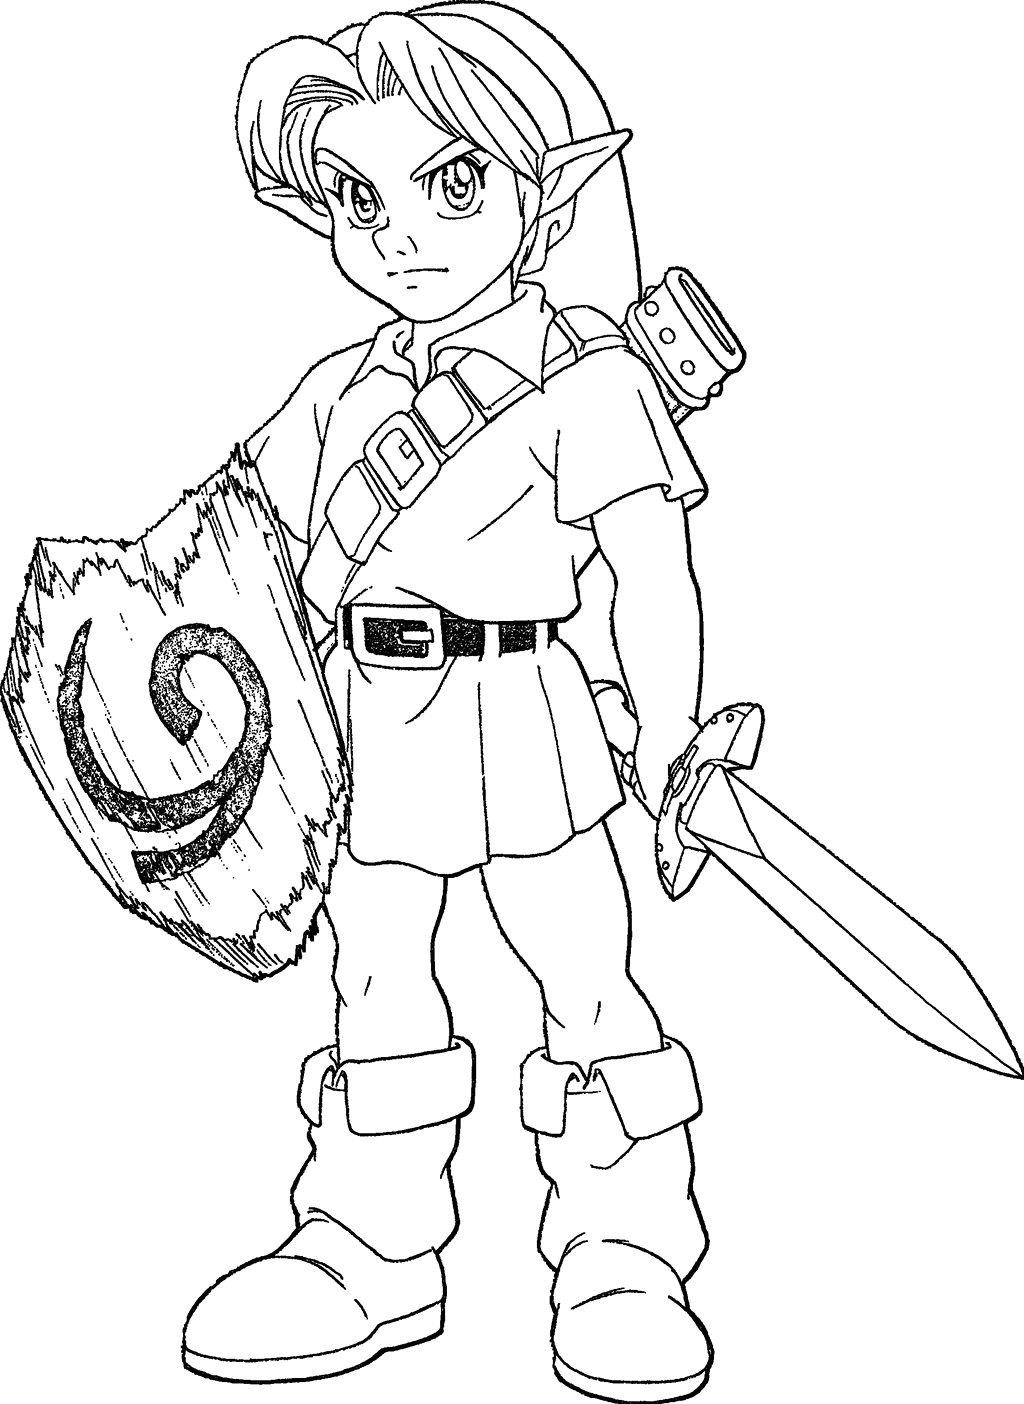 The Legend Of Zelda Ocarina Of Time Coloring Pages Young Link Ocarina Of Time Lineart by Skylight1989 On